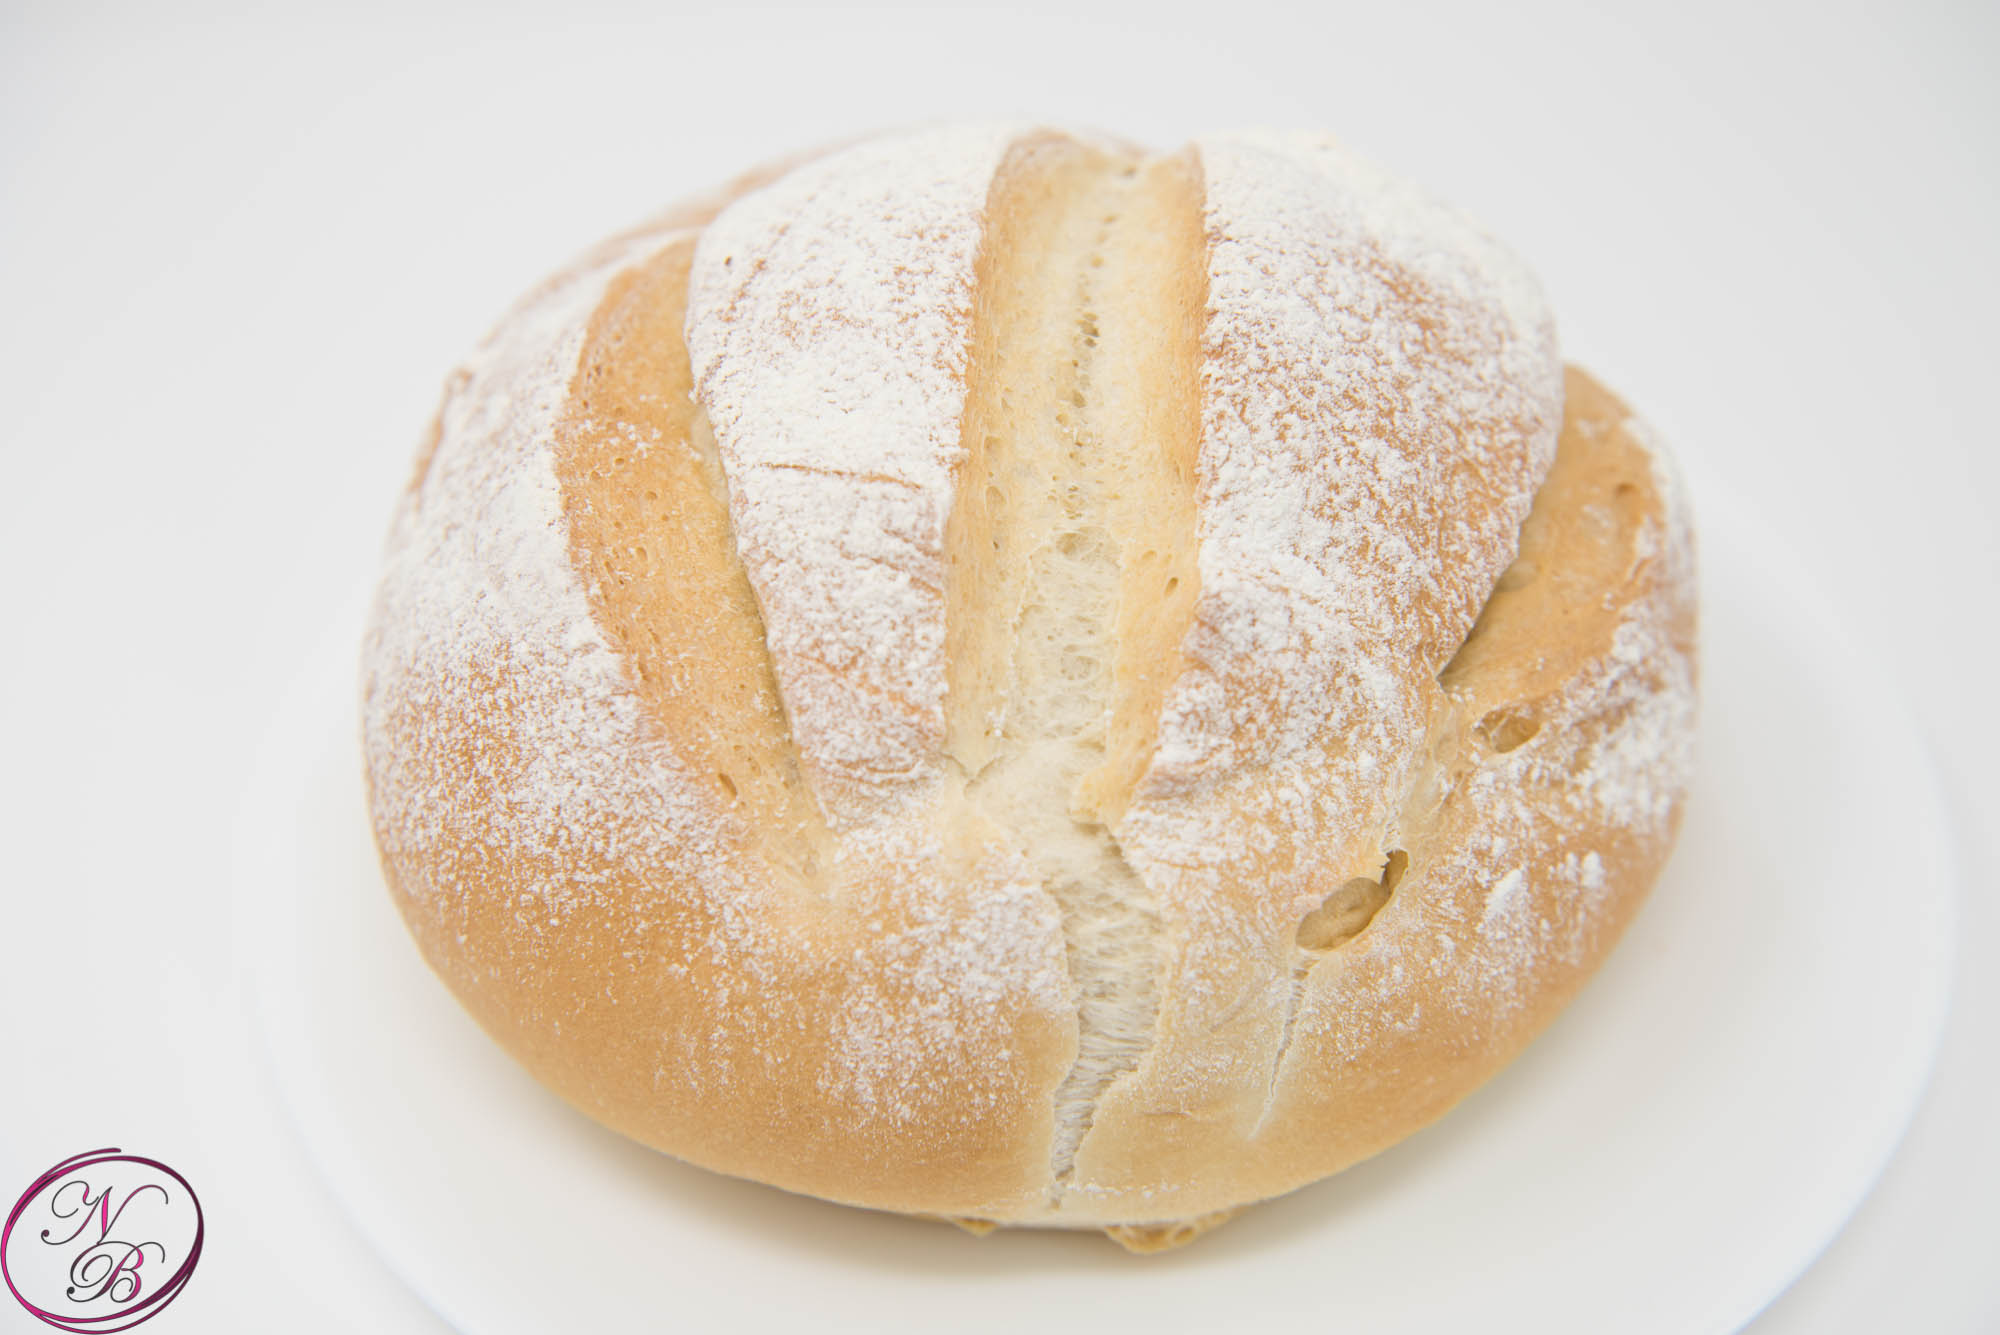 Portuguese White Bread